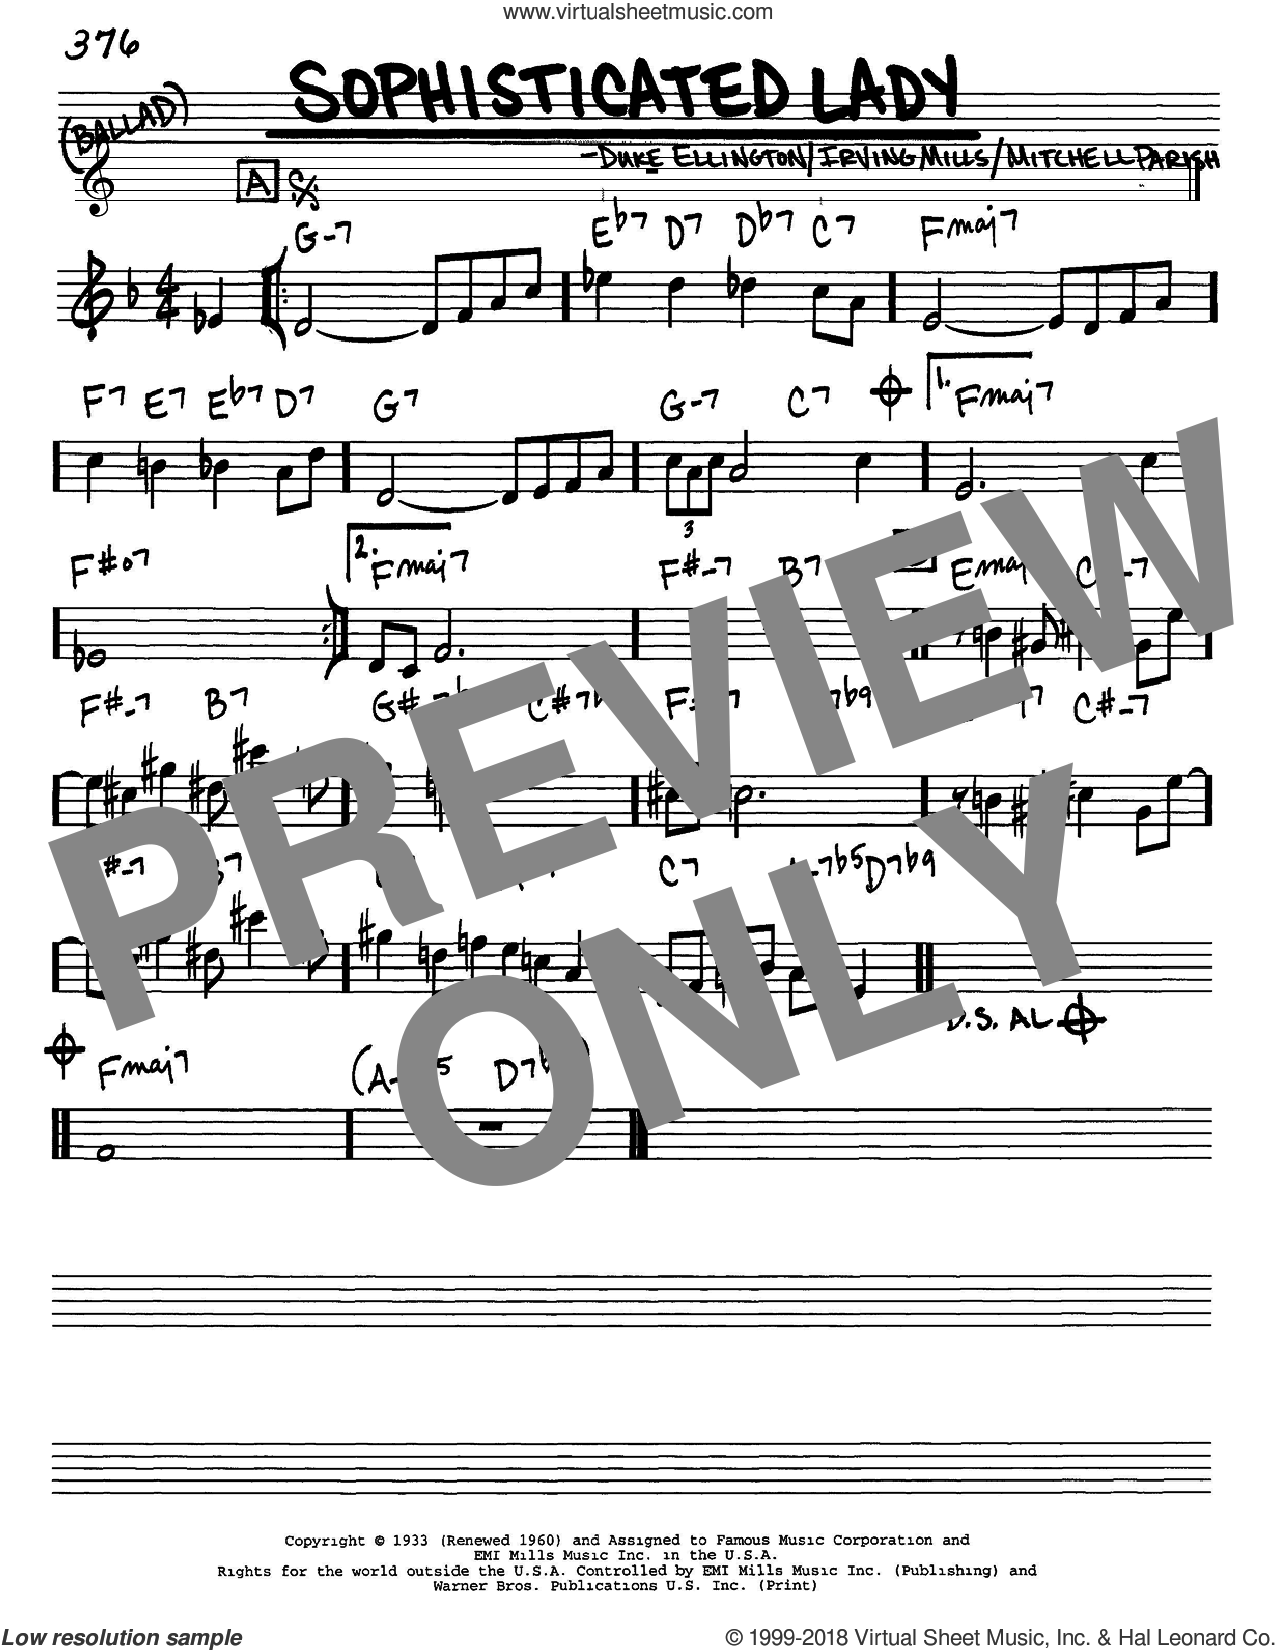 Sophisticated Lady sheet music for voice and other instruments (Eb) by Duke Ellington, Irving Mills and Mitchell Parish, intermediate voice. Score Image Preview.